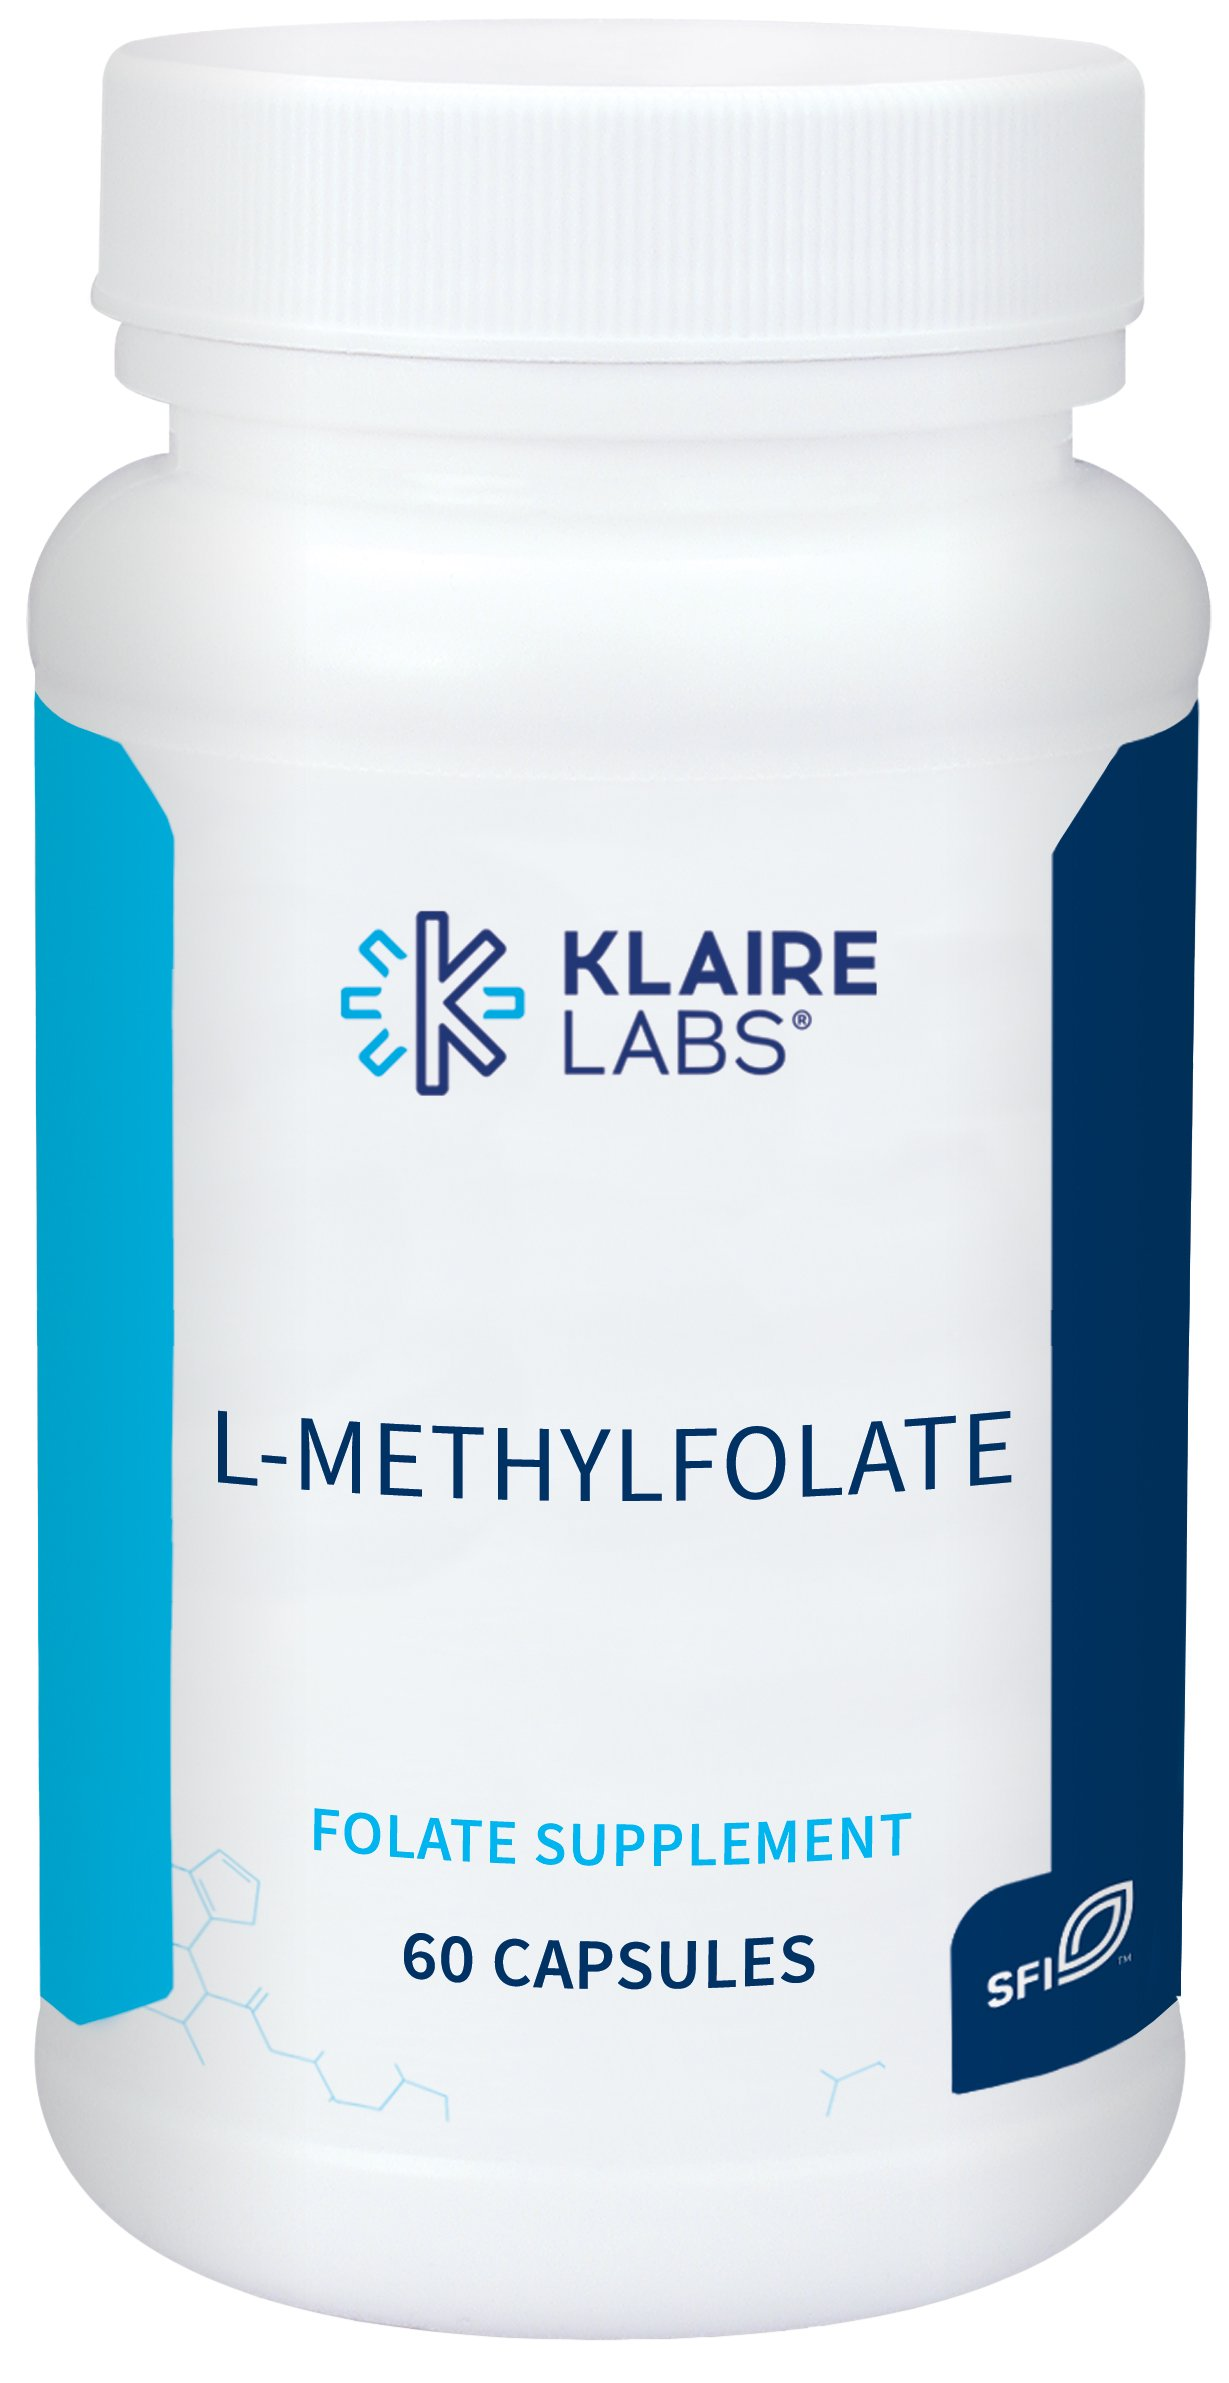 Klaire Labs L-Methylfolate - Highly Bioavailable, Non-GMO & Hypoallergenic 1000 Micrograms (1 Milligram) Metafolin L-5-MTHF (60 Capsules) by Klaire Labs